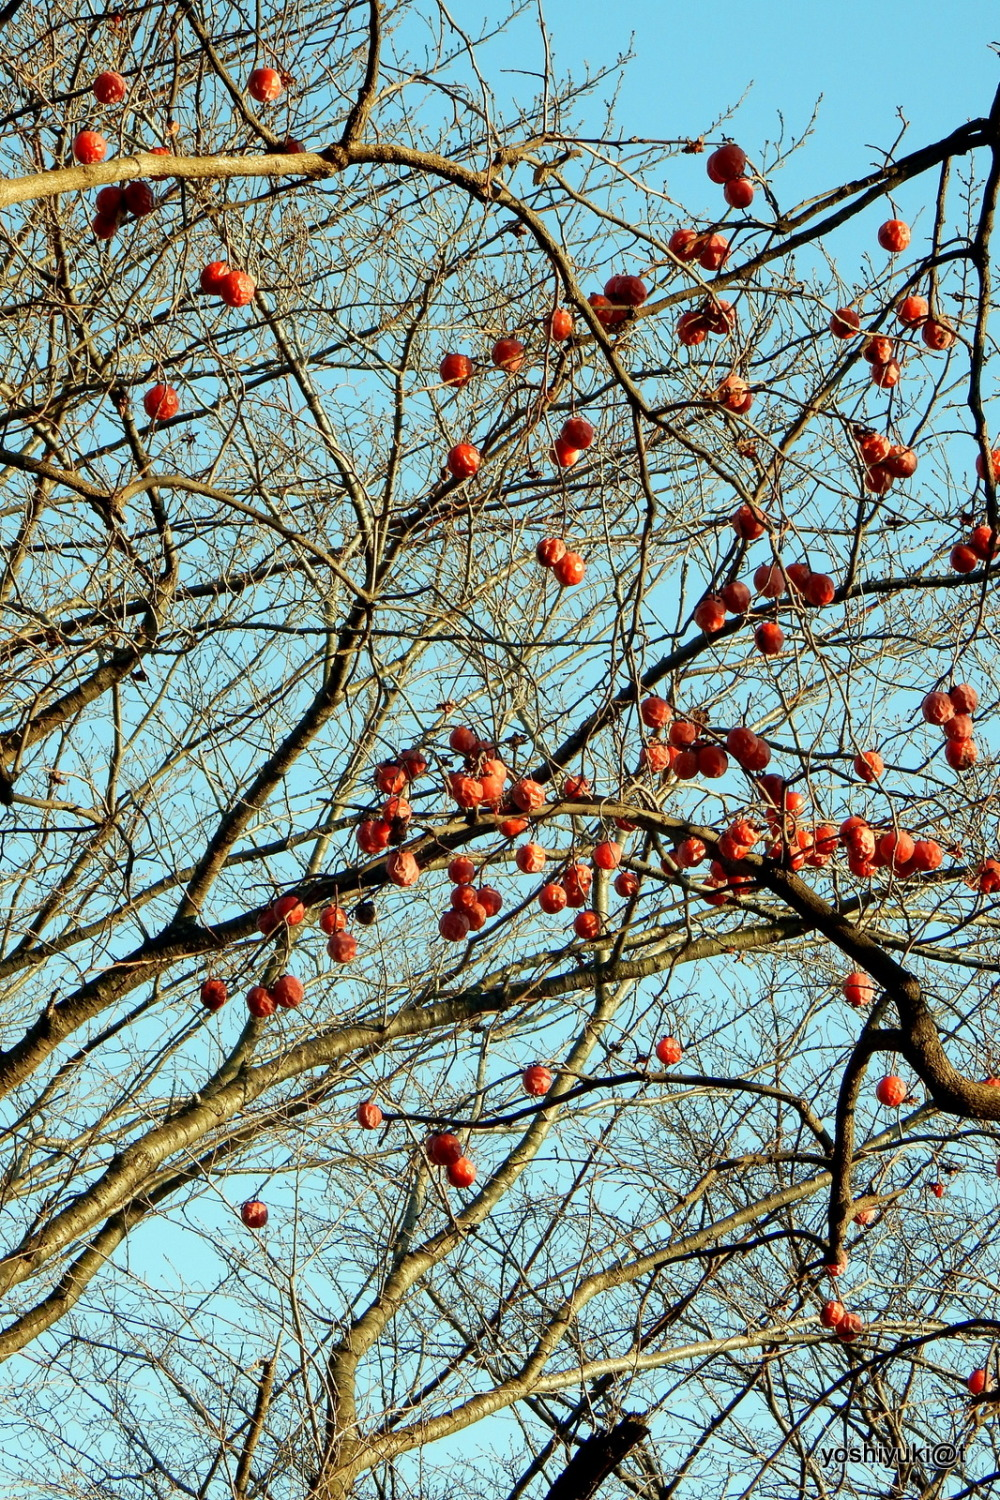 Persimmons left on trees for birds